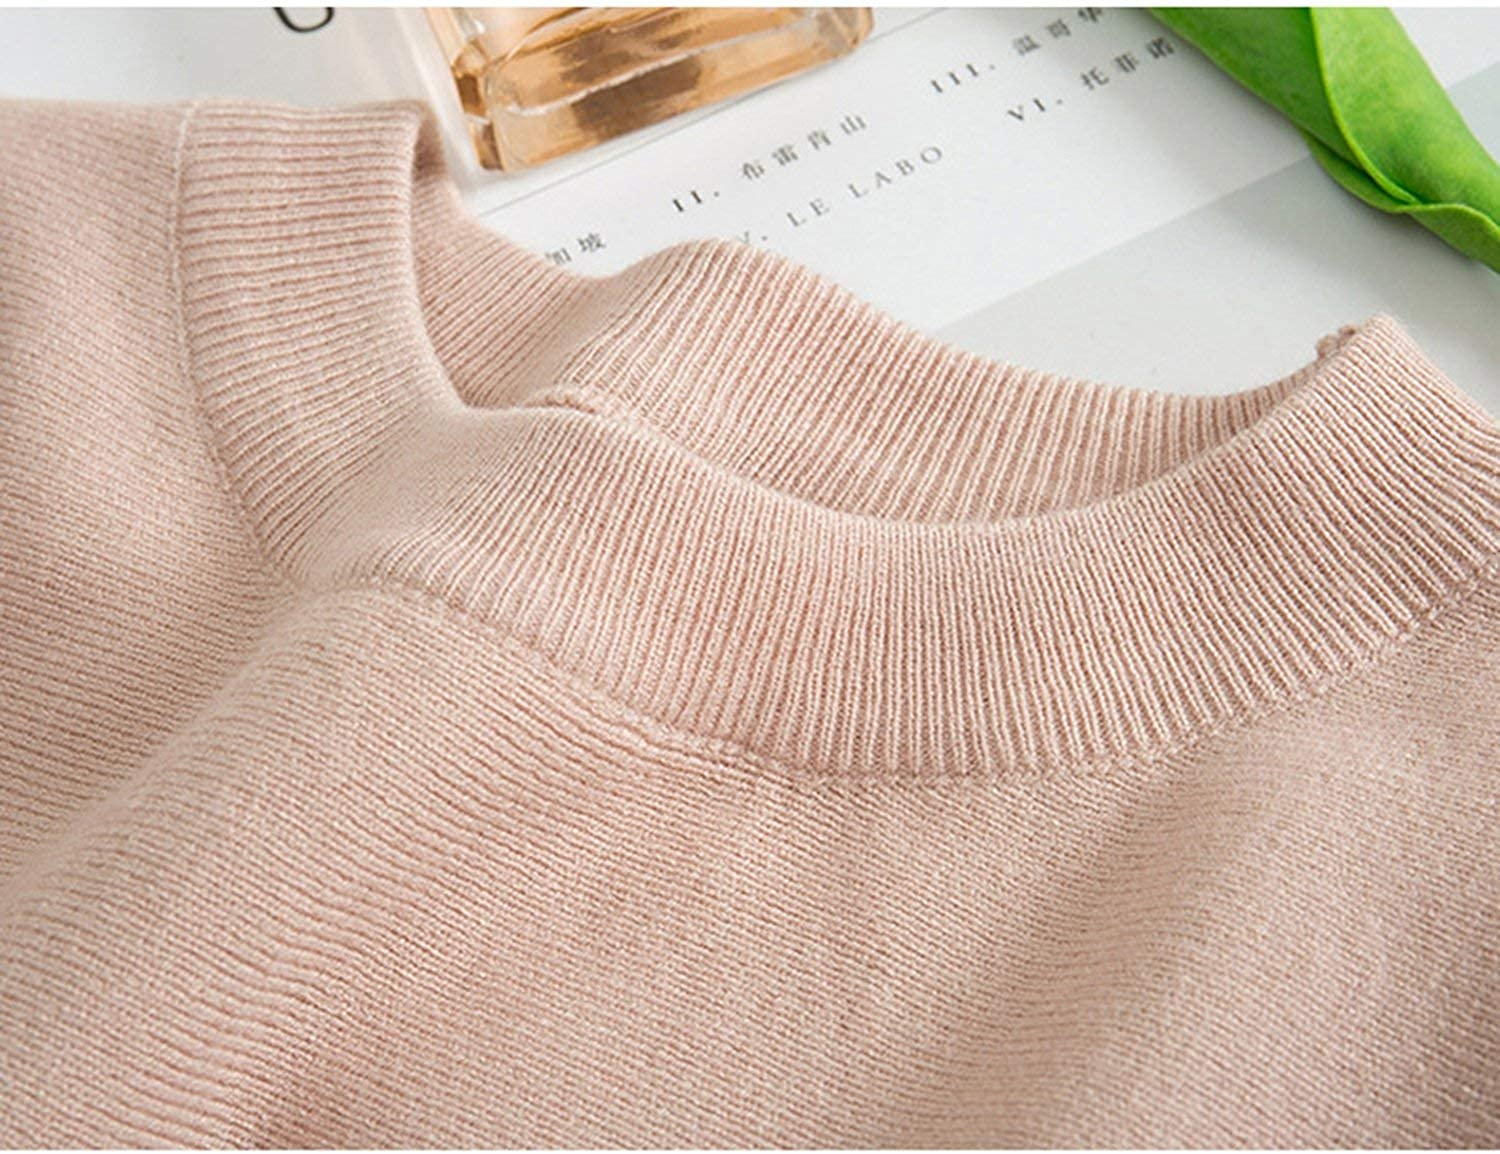 B0834QTRN9 Contrast Sweater Winter Pullover Sweater Women Sleeve Knitted Jumper Pull Black Pink 61Y77Y-h9WL